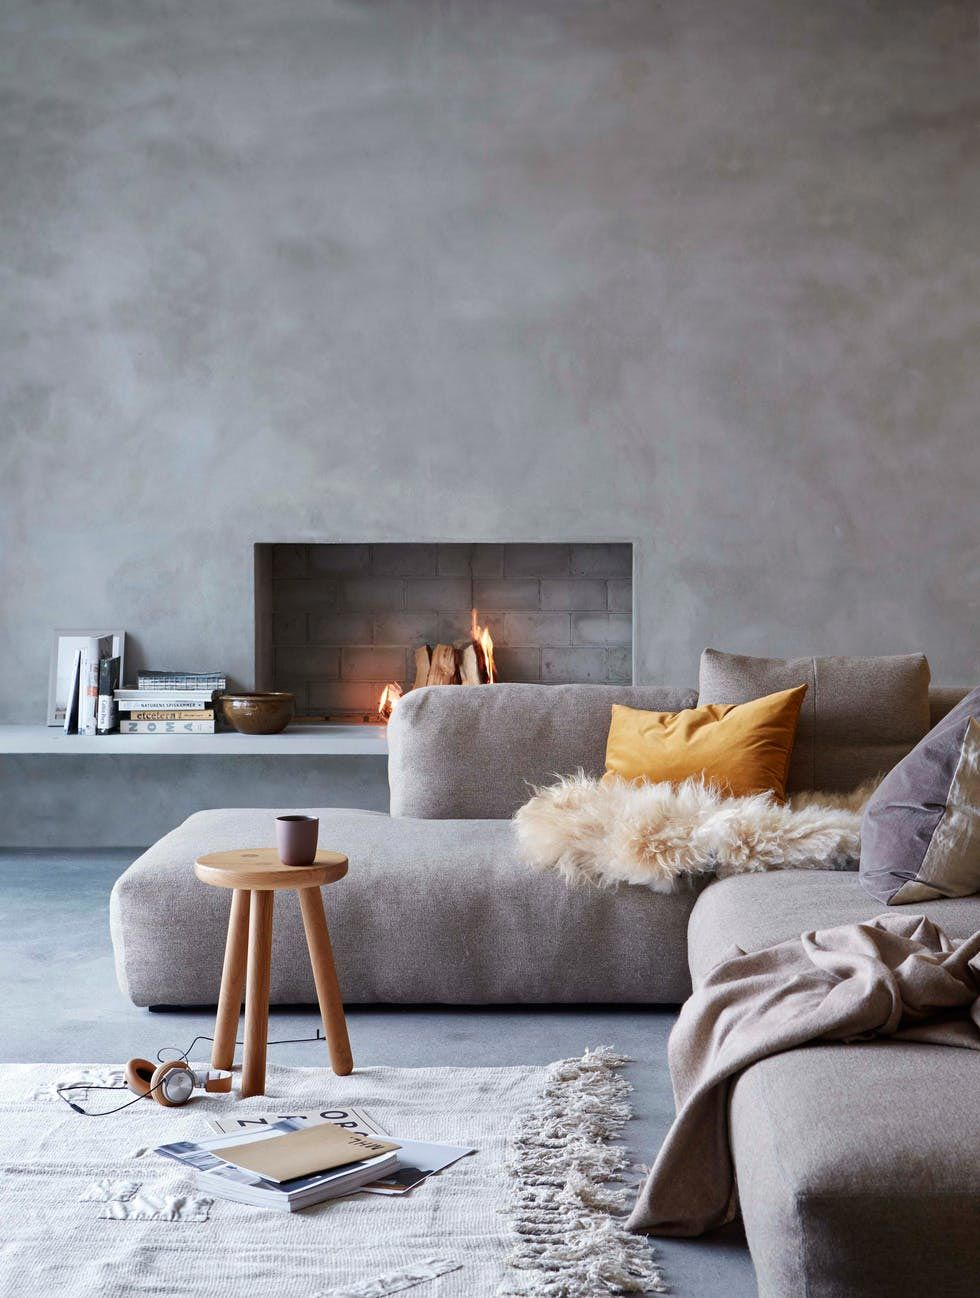 7 Interior Decor Trends For 2018 That Will Make You Go Wow Home Interior Design Fireplace Design Minimalist Home